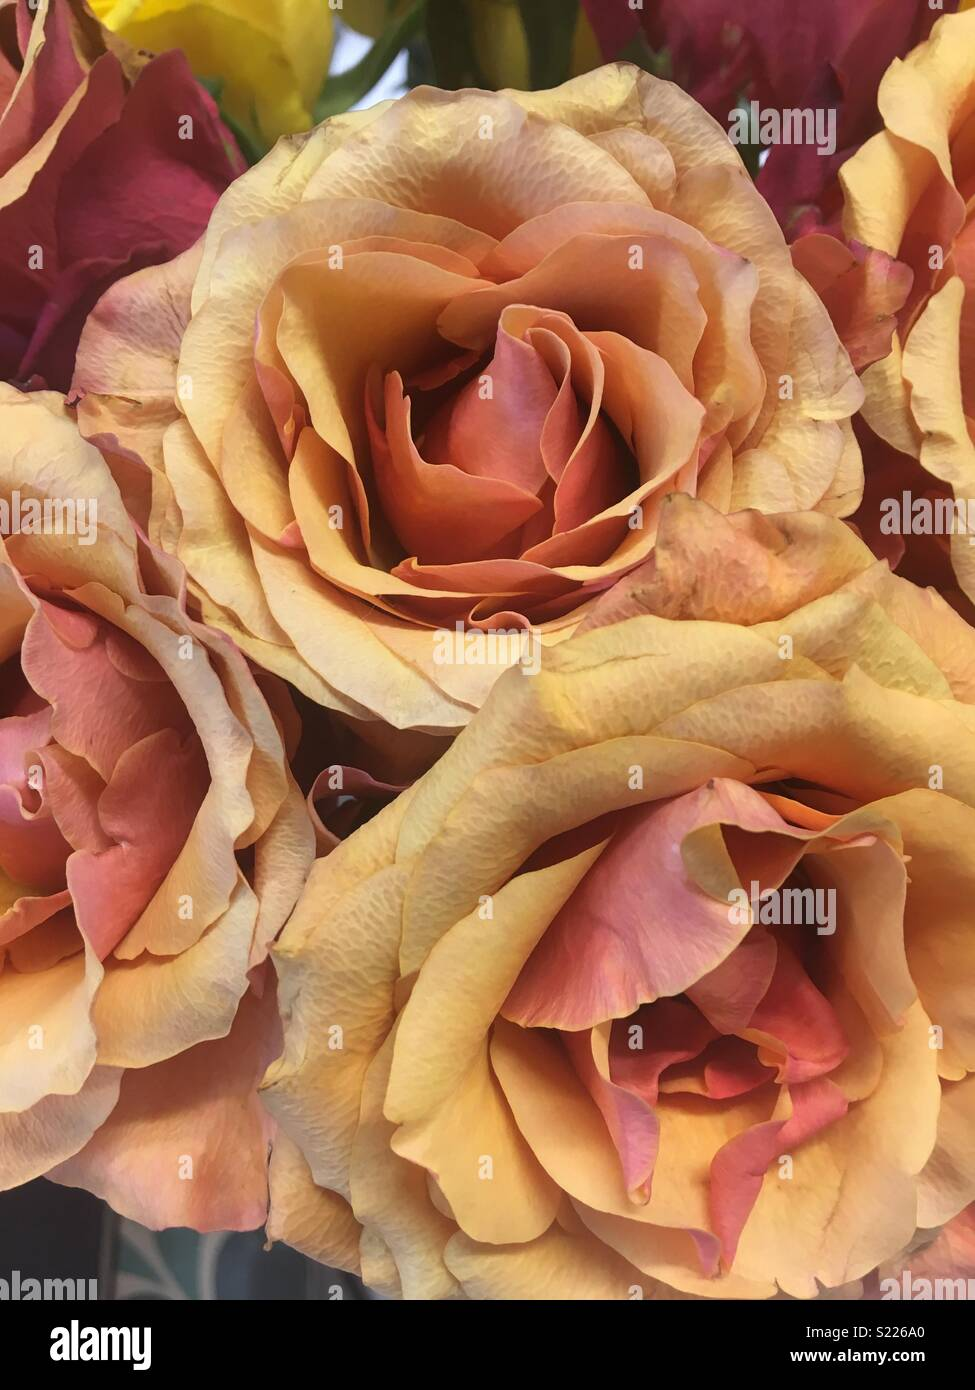 Two tone roses - Stock Image